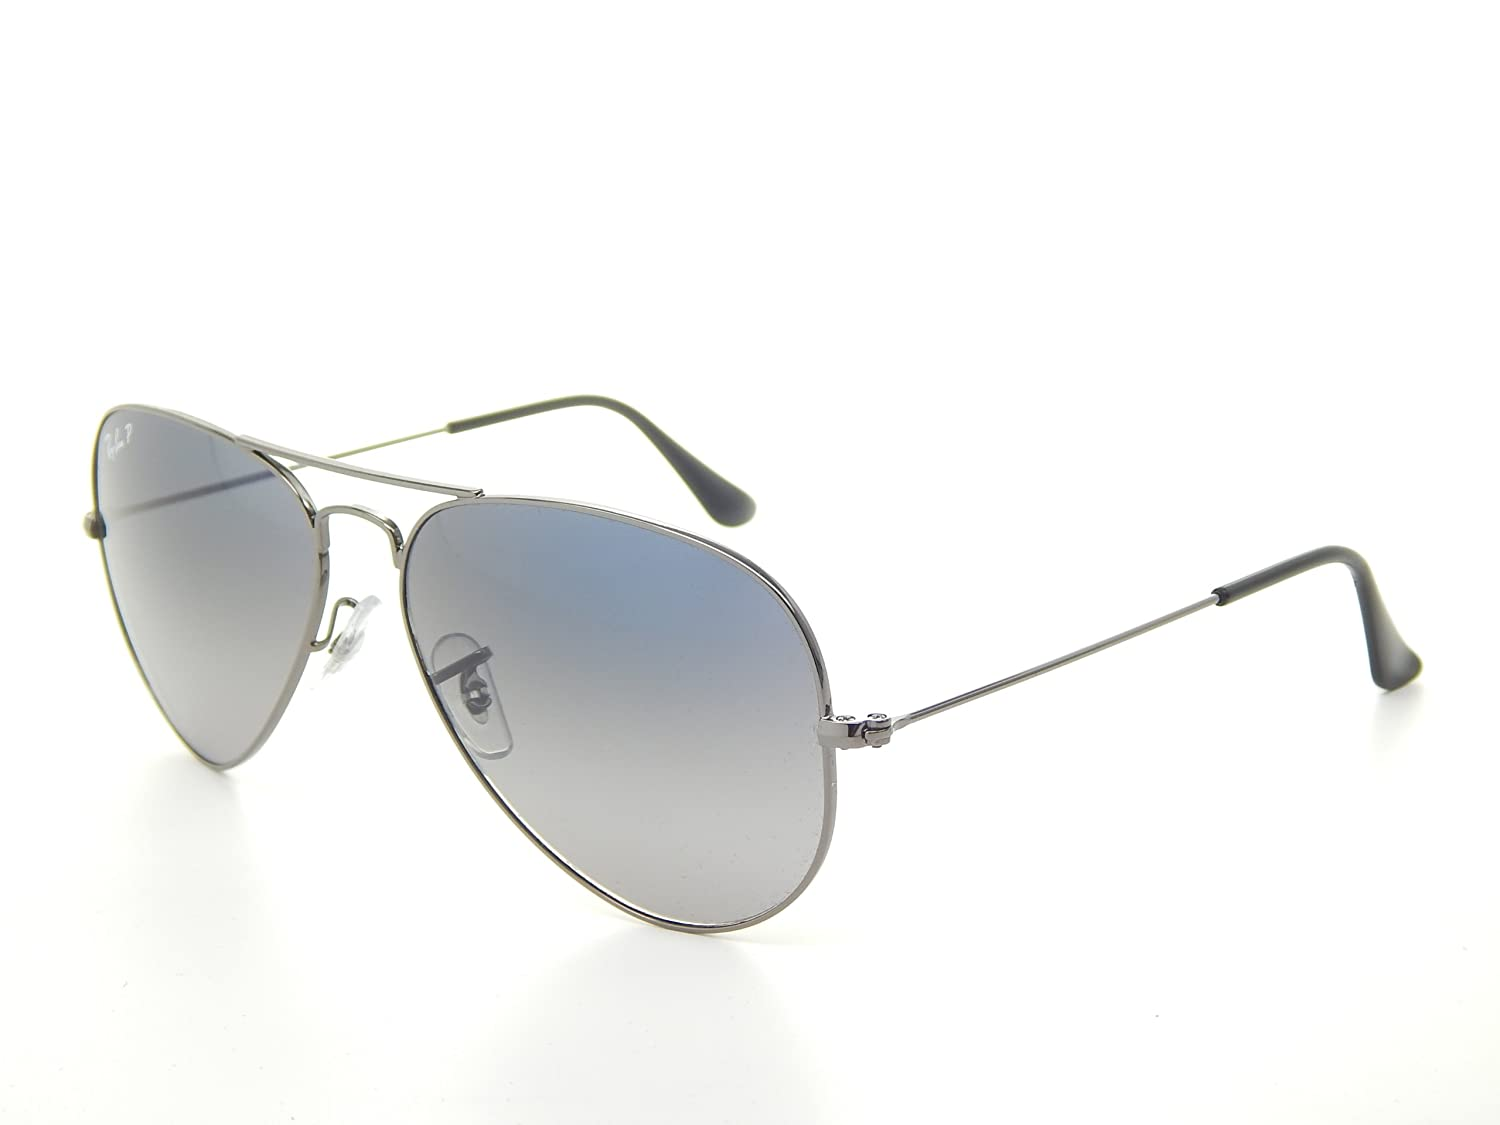 237c3f56403 Amazon.com  New Ray Ban RB3025 004 78 Gunmetal Blue Gary Gradient 55mm  Polarized Sunglasses  Clothing